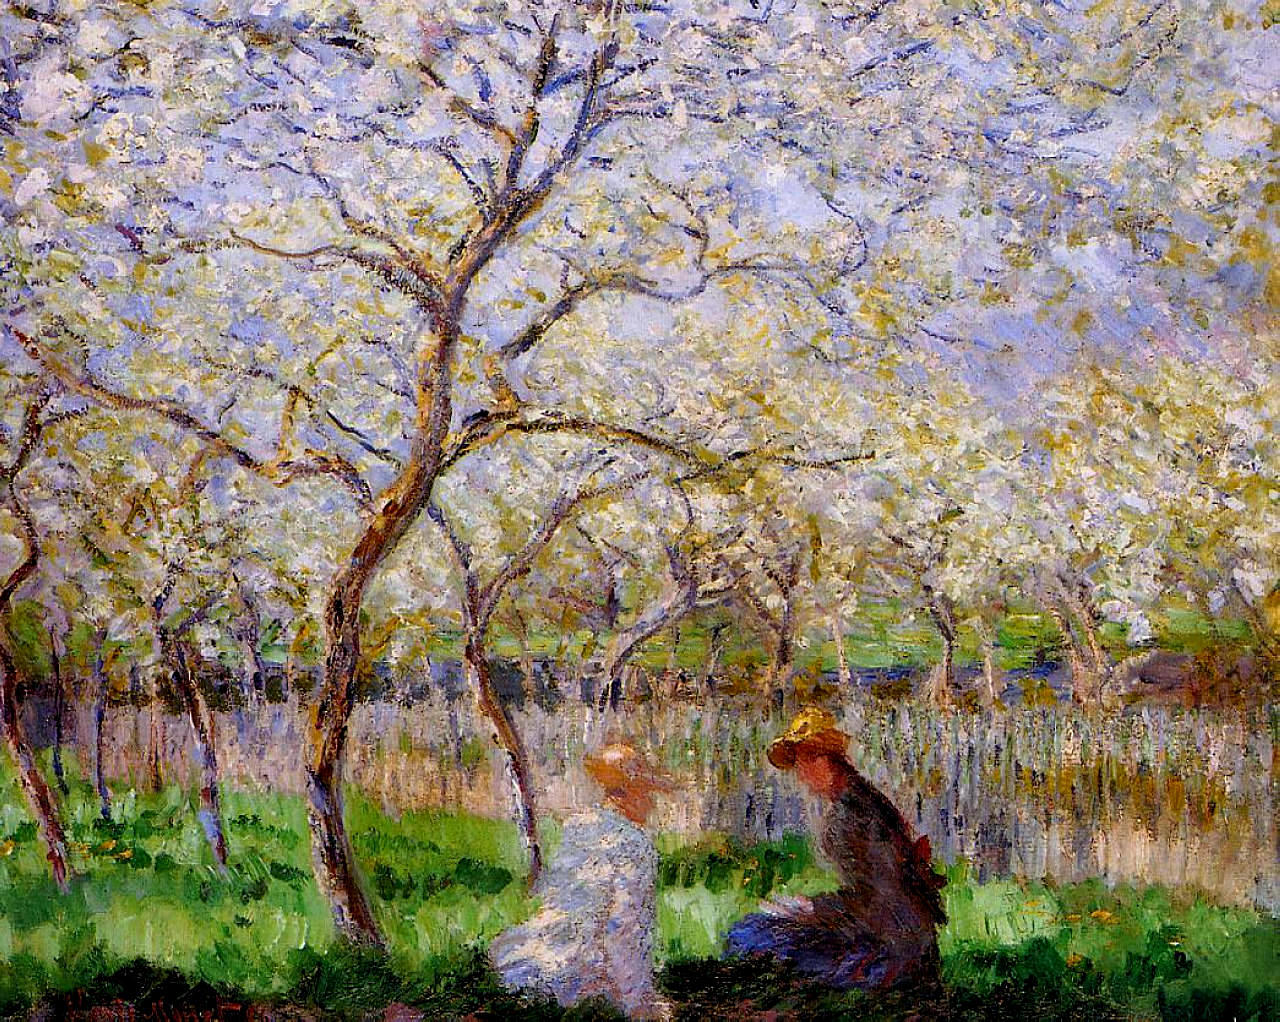 Springtime by Claude Monet, 1886